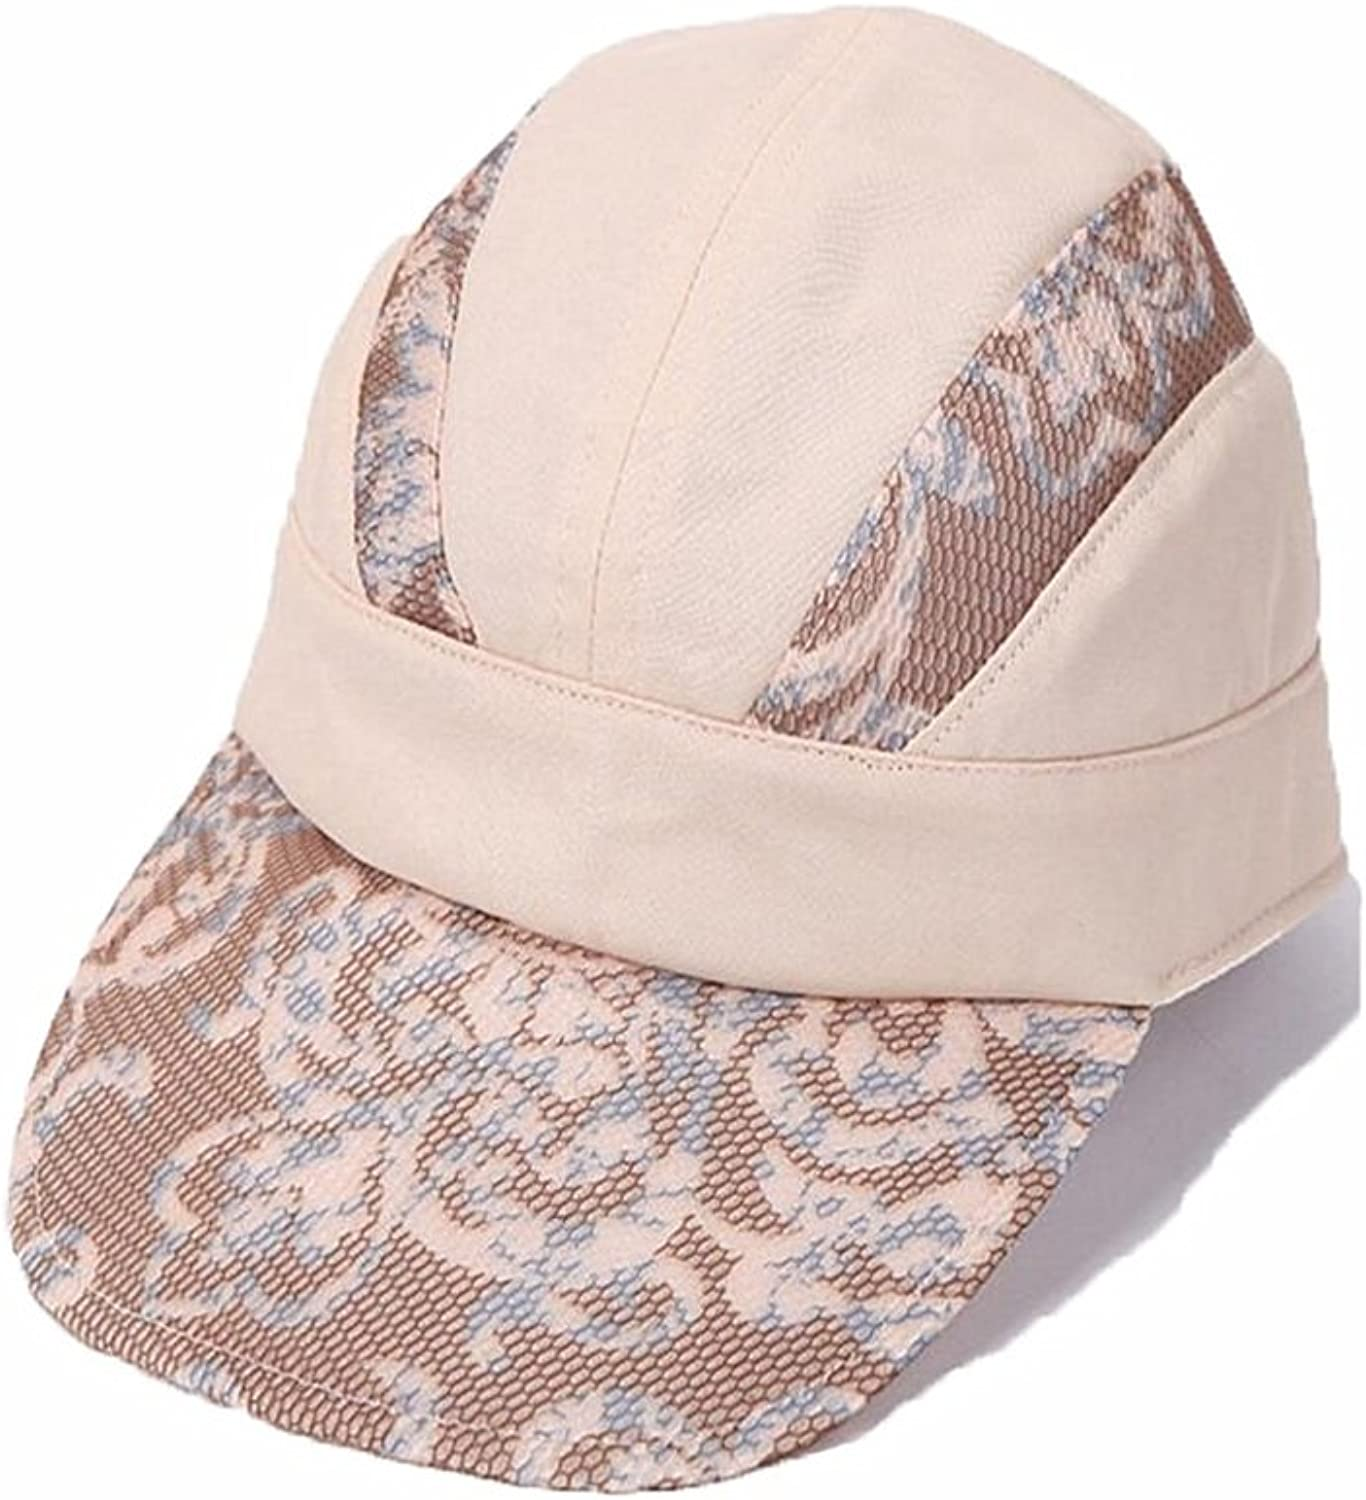 Ladies Spring and Summer Sun Hat Baseball Cap Sports Sun Hat